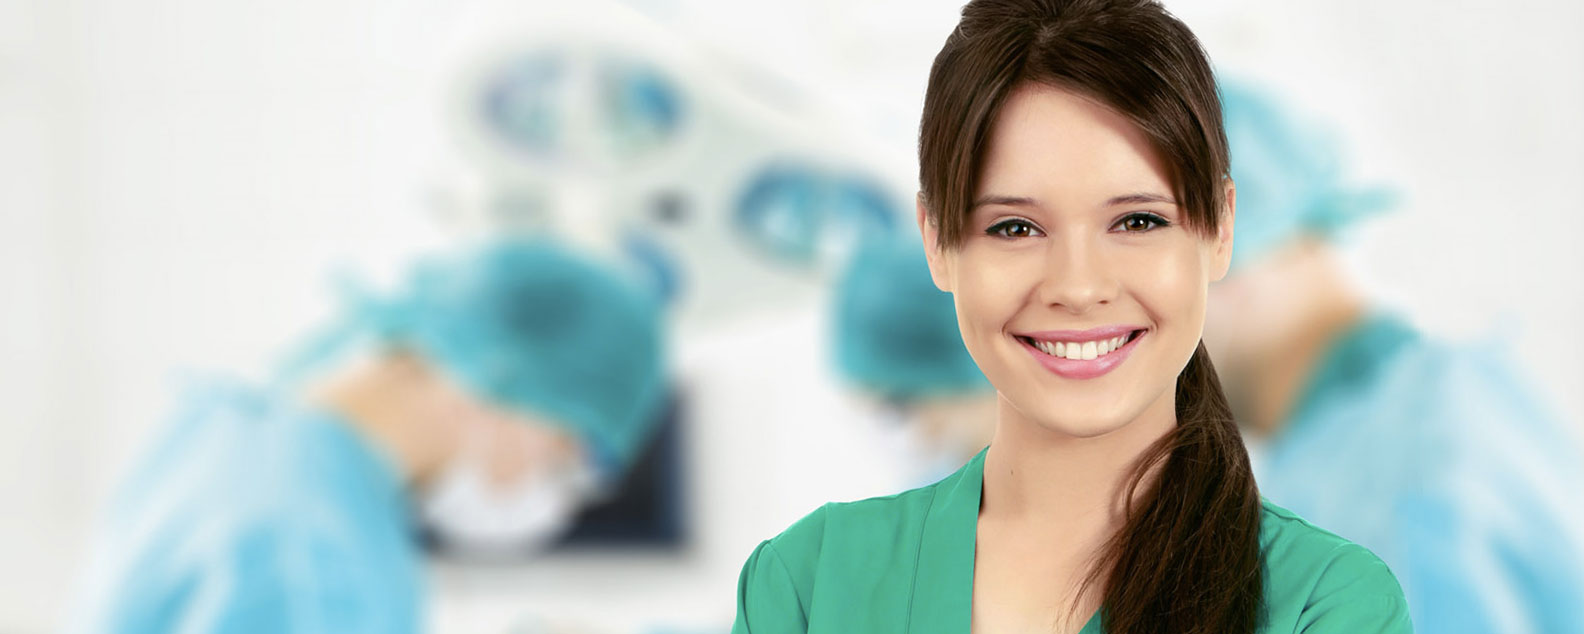 evaluation essay on plastic surgery Plastic surgery endoscopy op notes and all other papers or material containing objectives are used for the evaluation of residents and are distributed to.